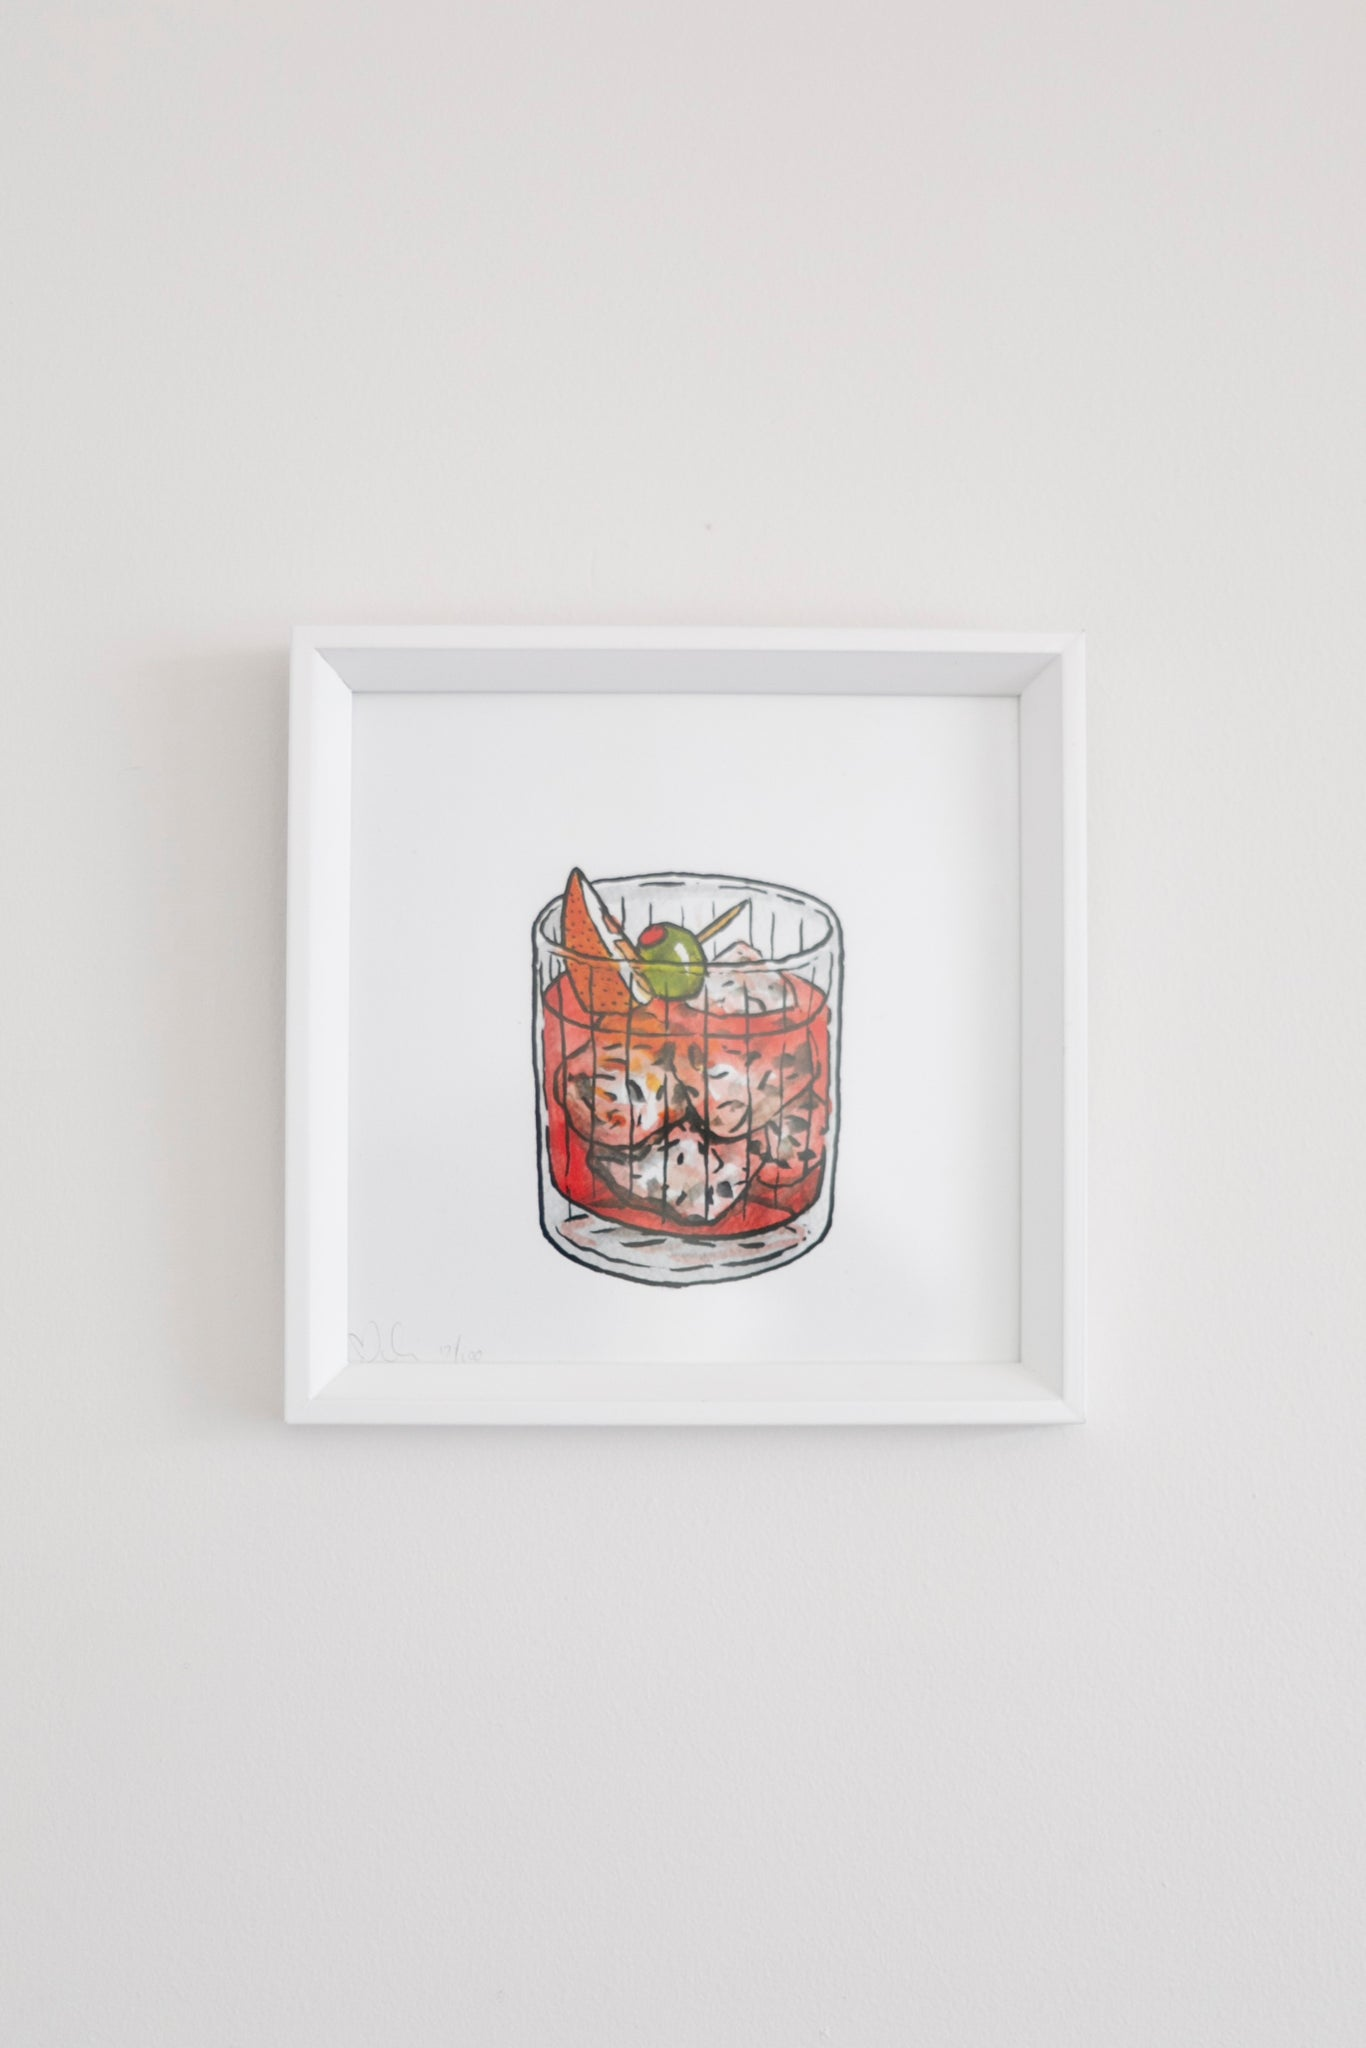 Small Spritz Limited Edition Framed Print - Billie Justice Thomson